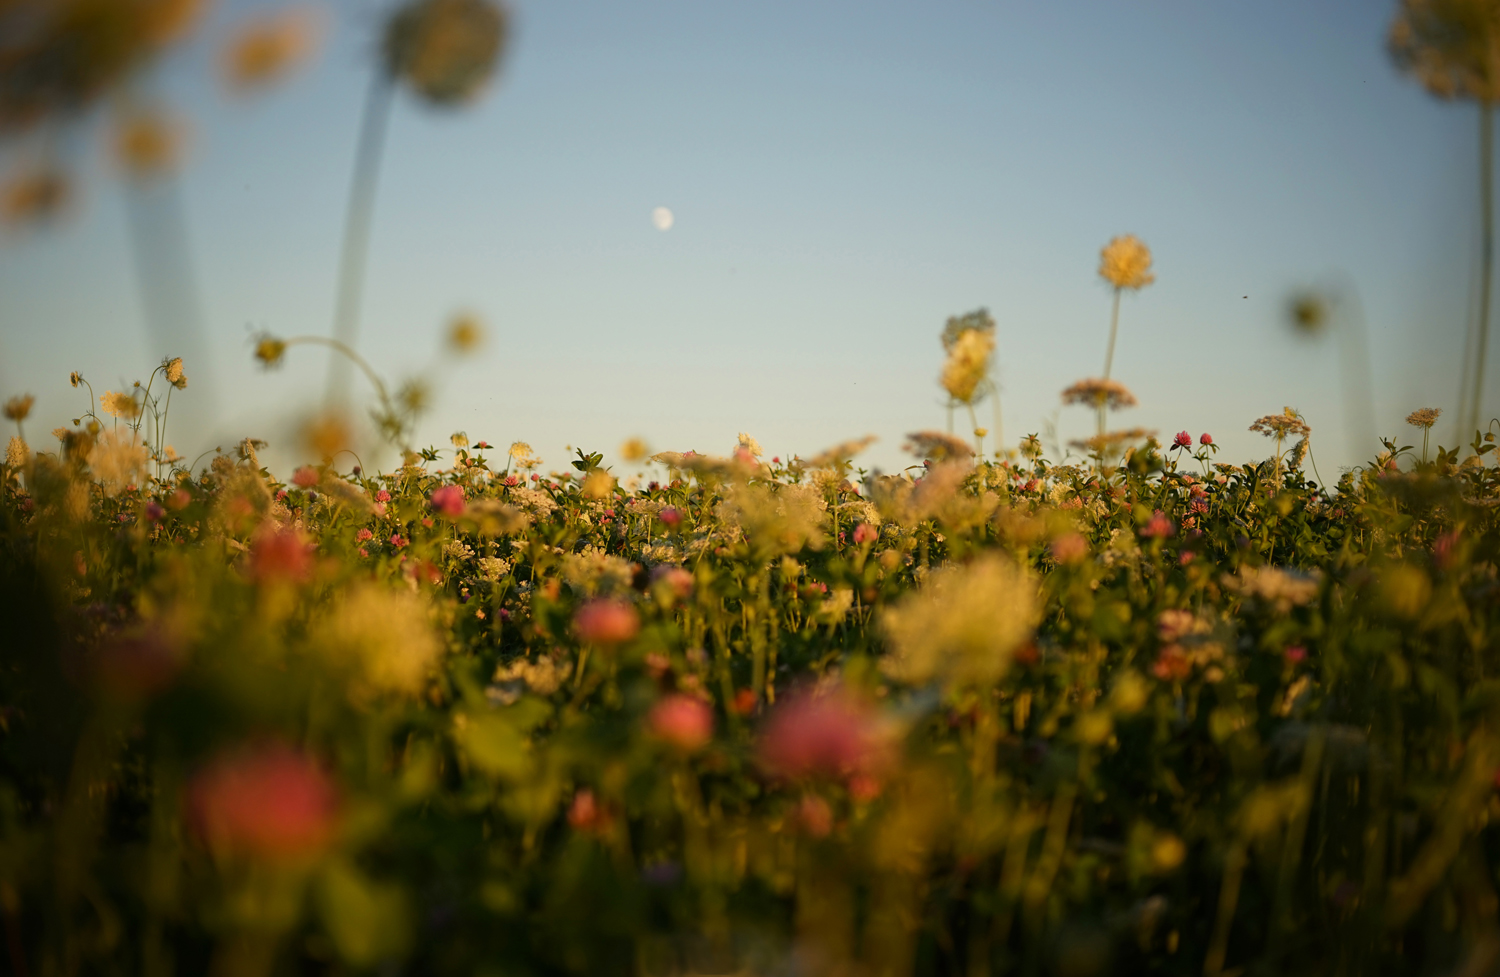 Field of Dreams by Kai Johne